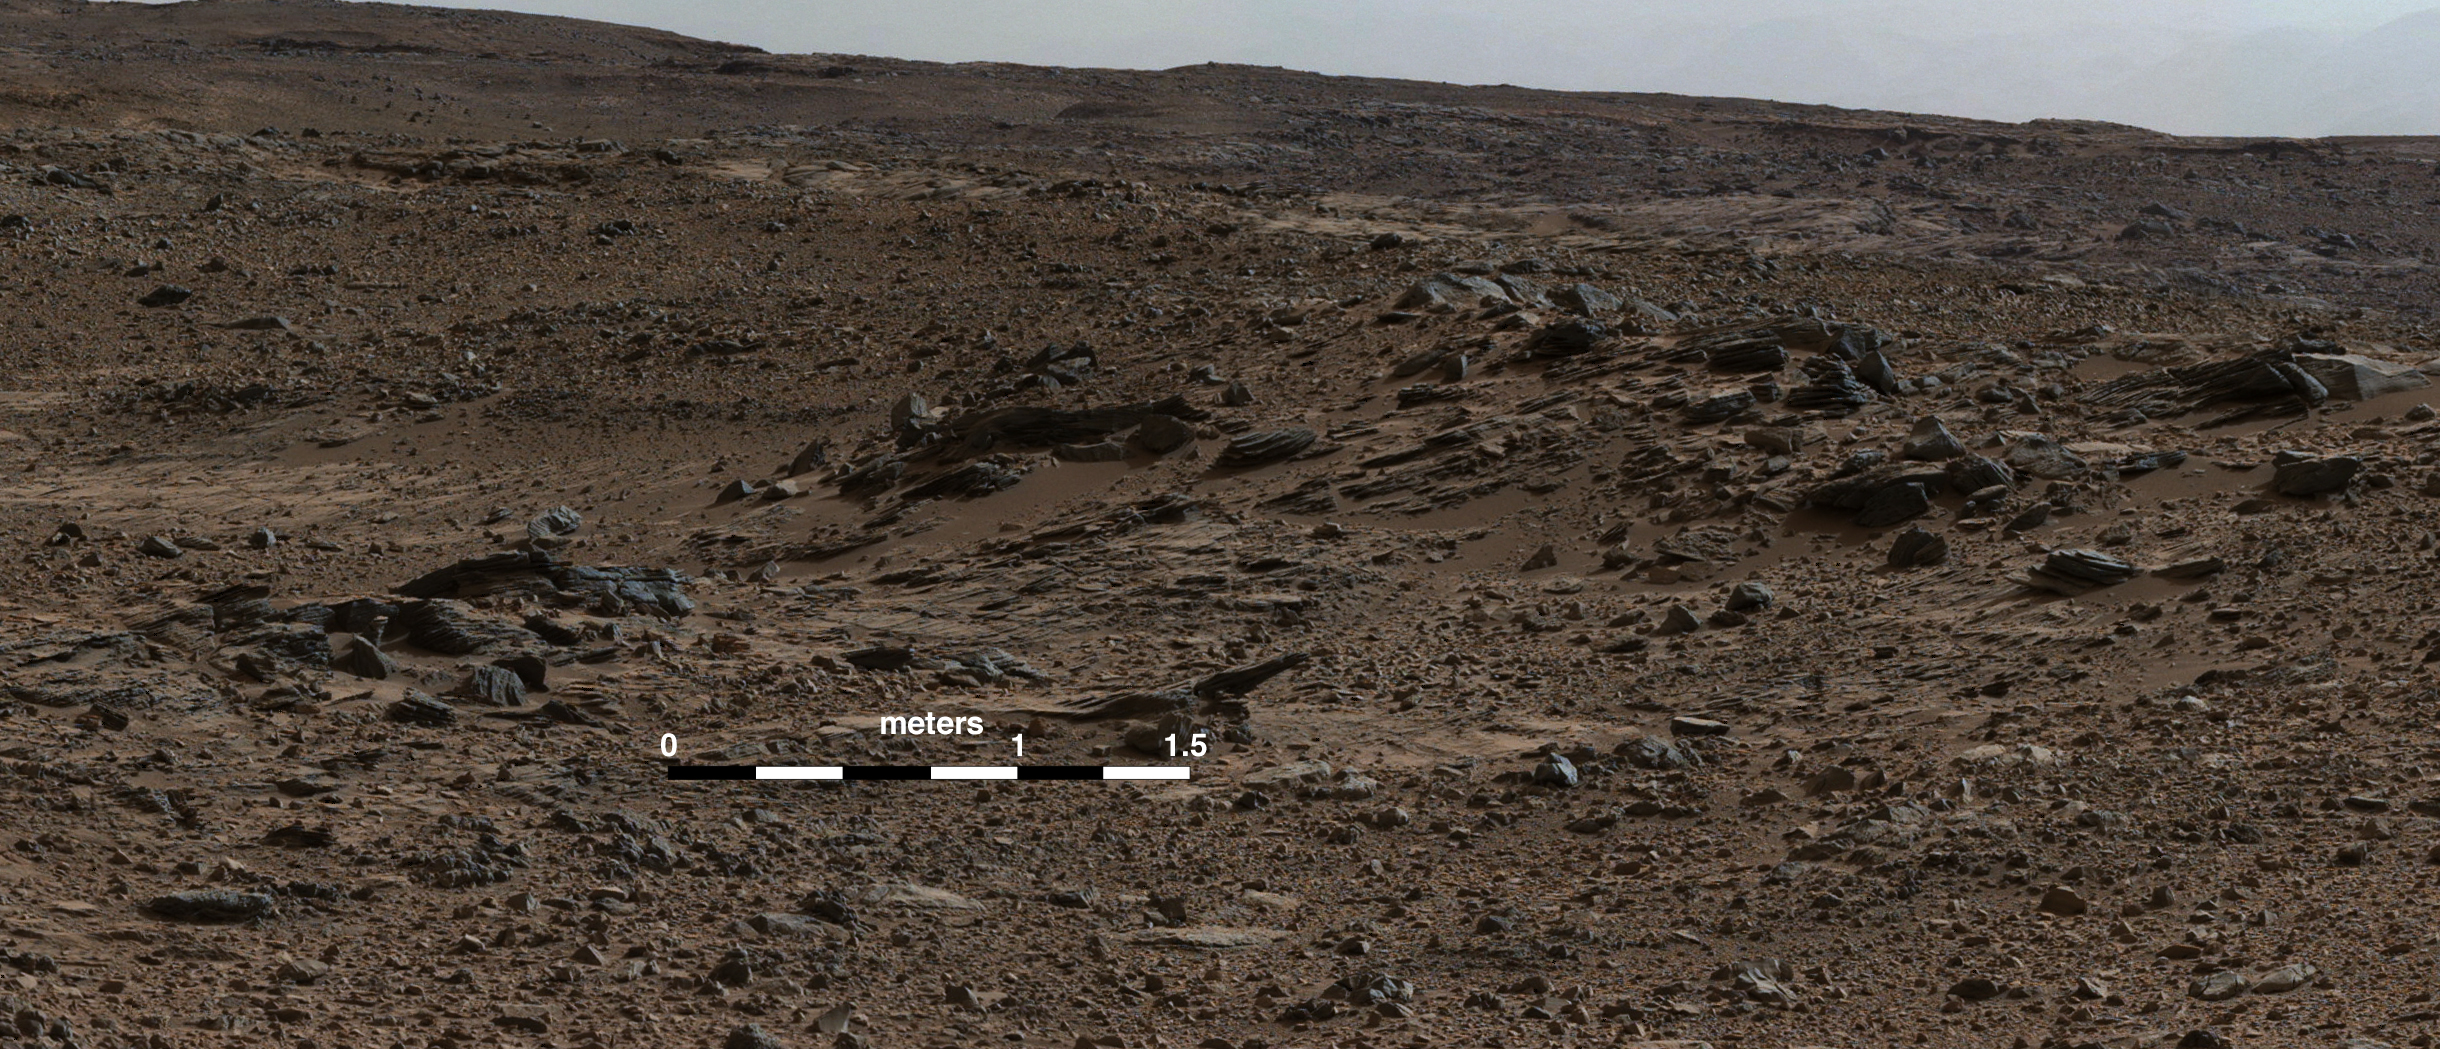 Multiple Episodes of Delta Growth in Gale Crater